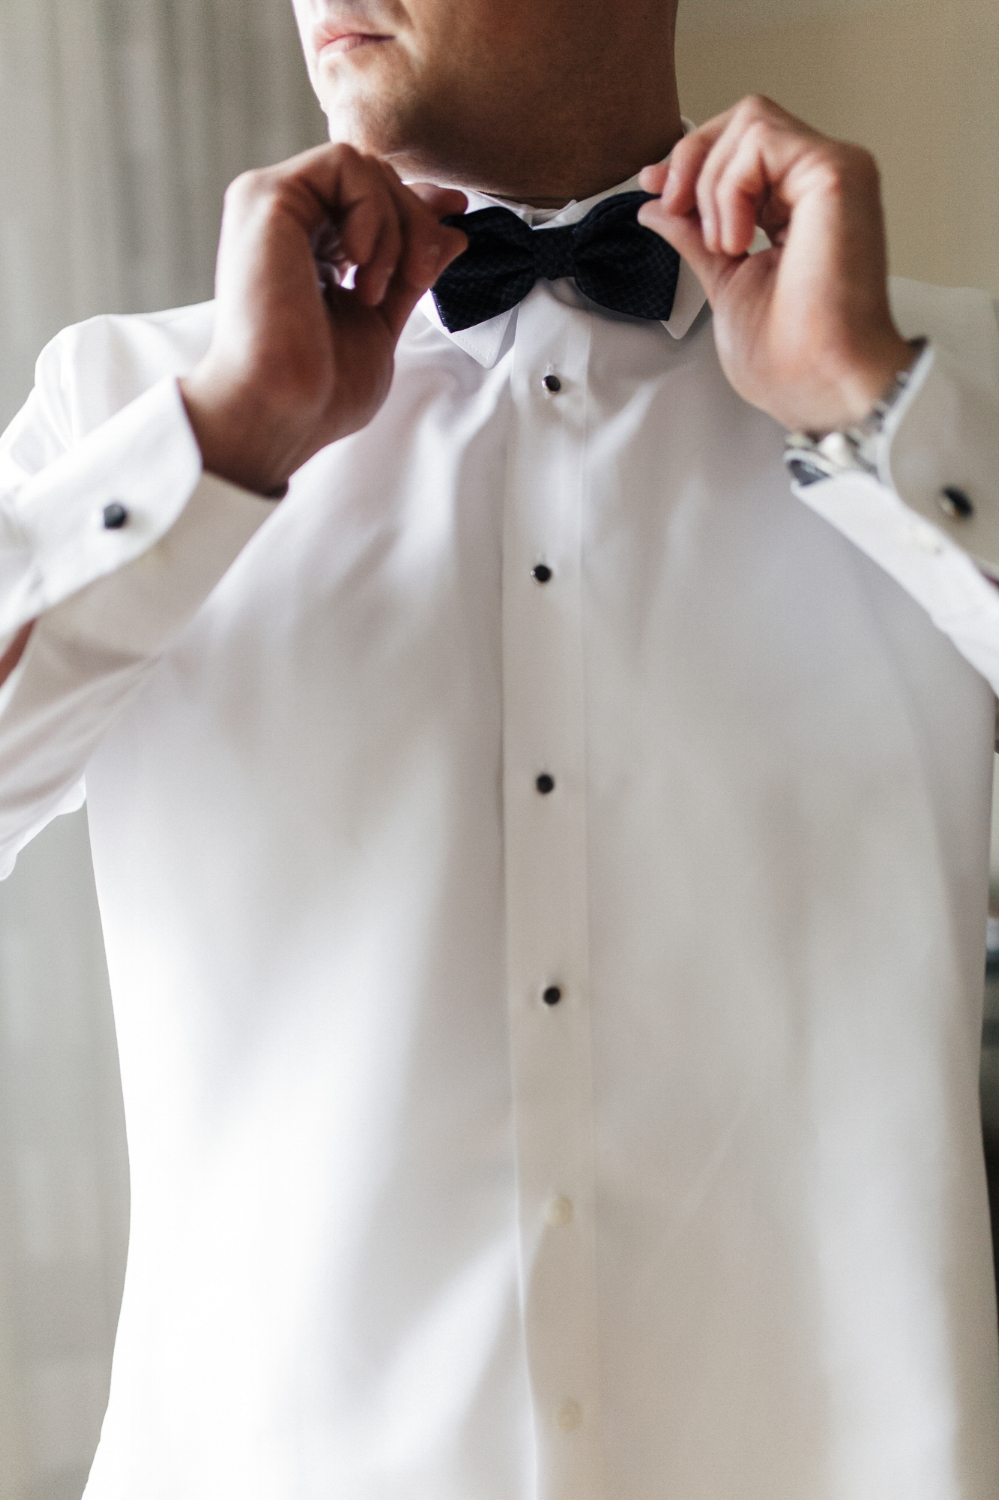 boca resort hotel groom preparation adjusting bow-tie